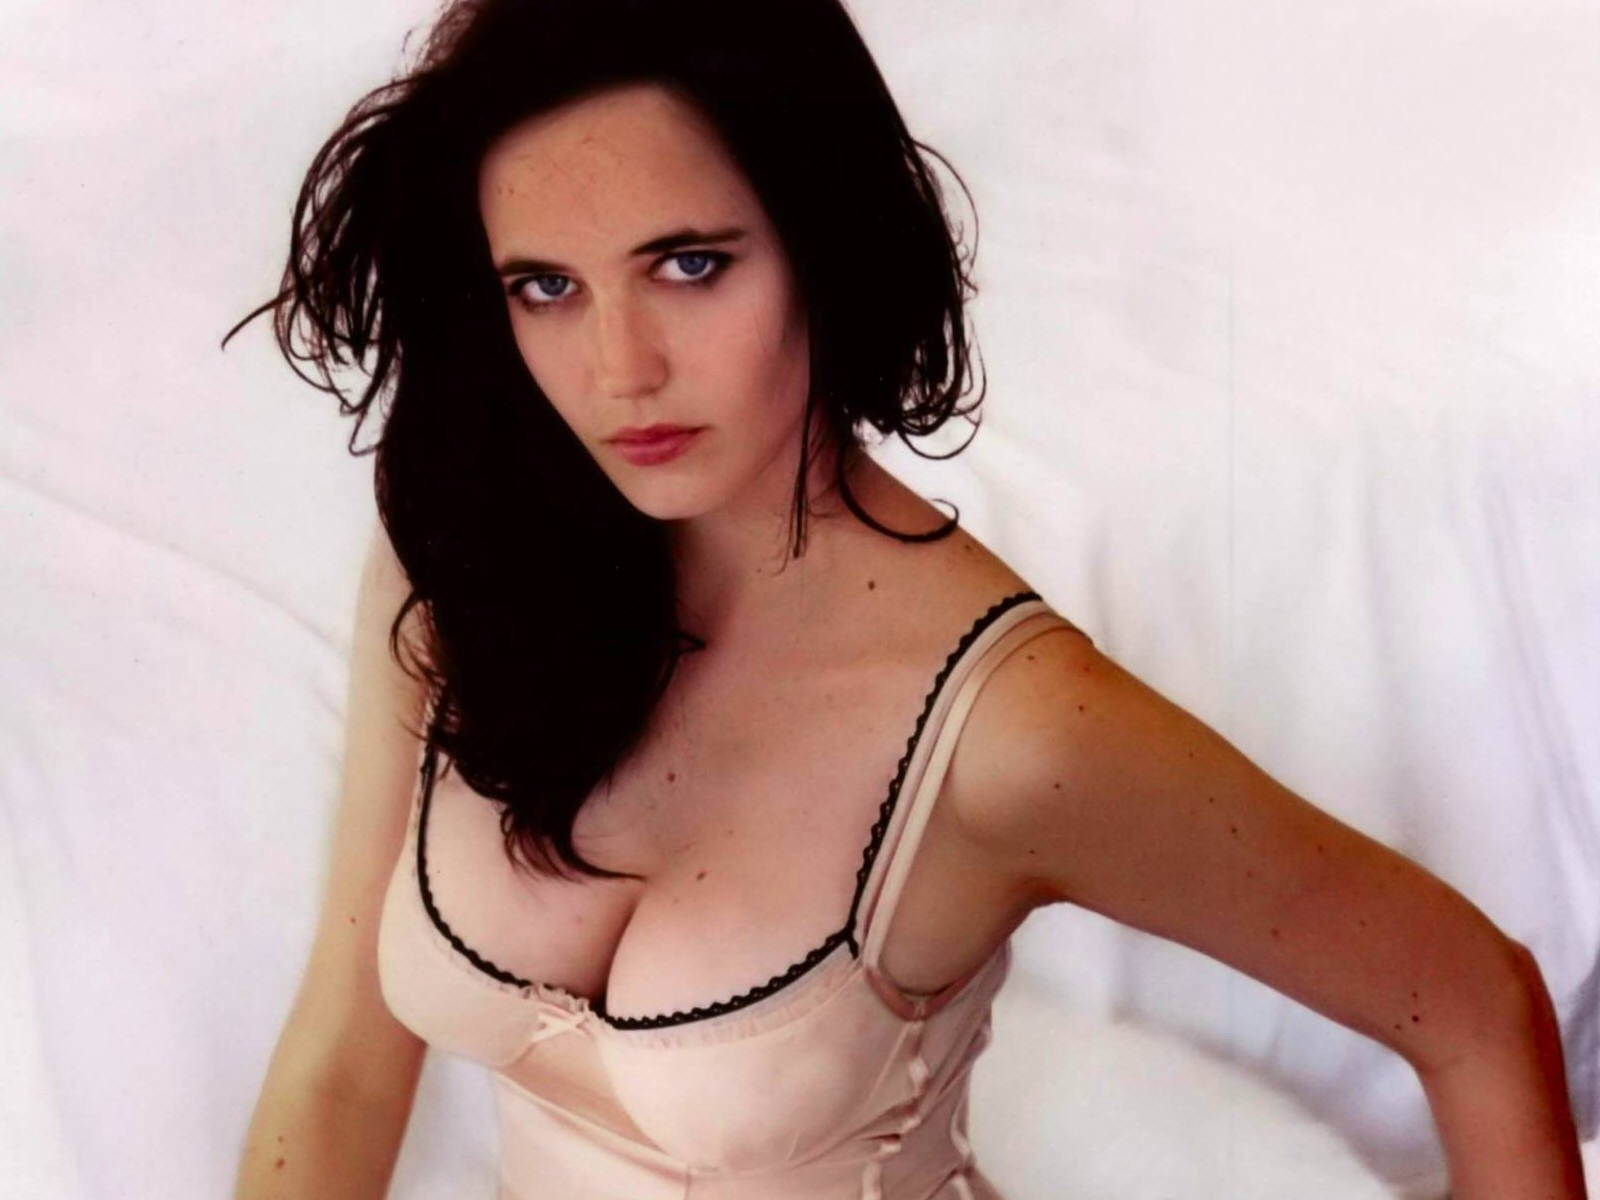 Wallpaper di Eva Green in lingerie